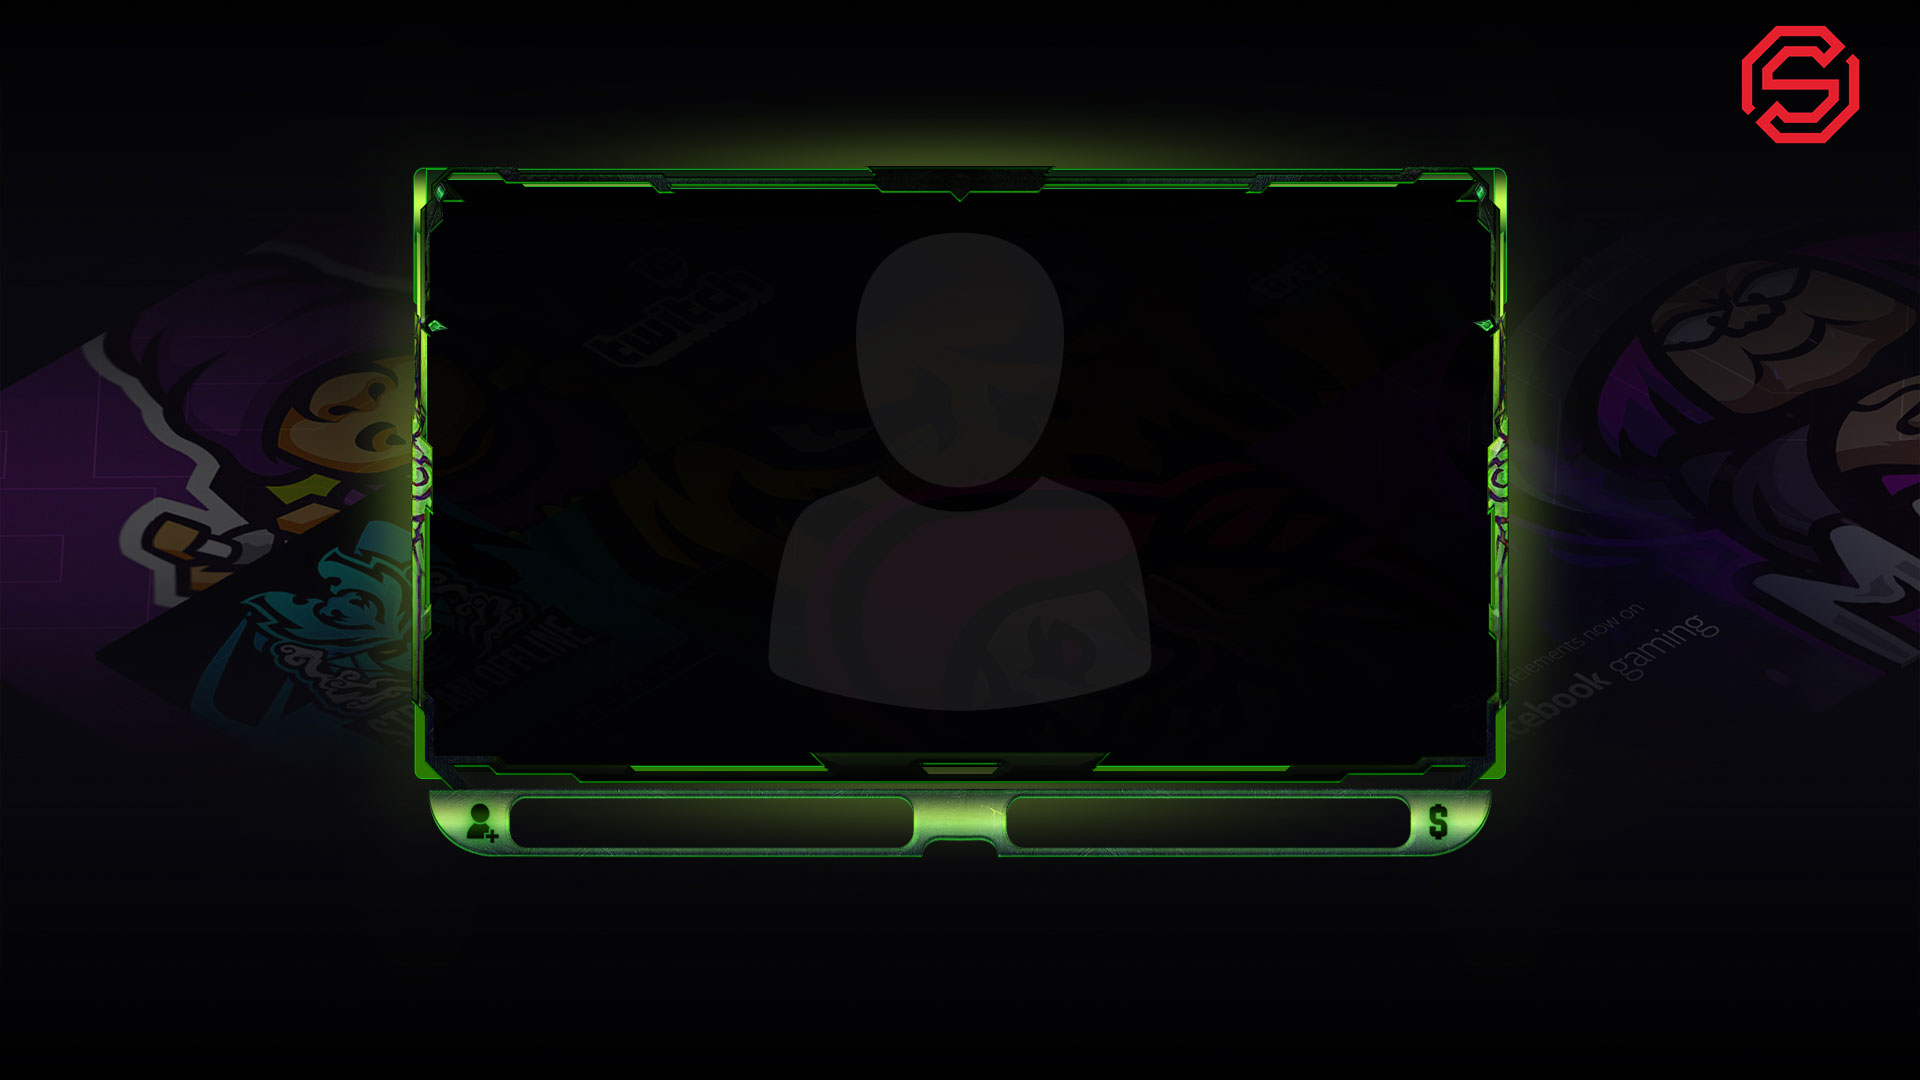 The Burning Crusade Webcam Overlay - Animated webcam overlay for World of Warcraft Streamer Overlays